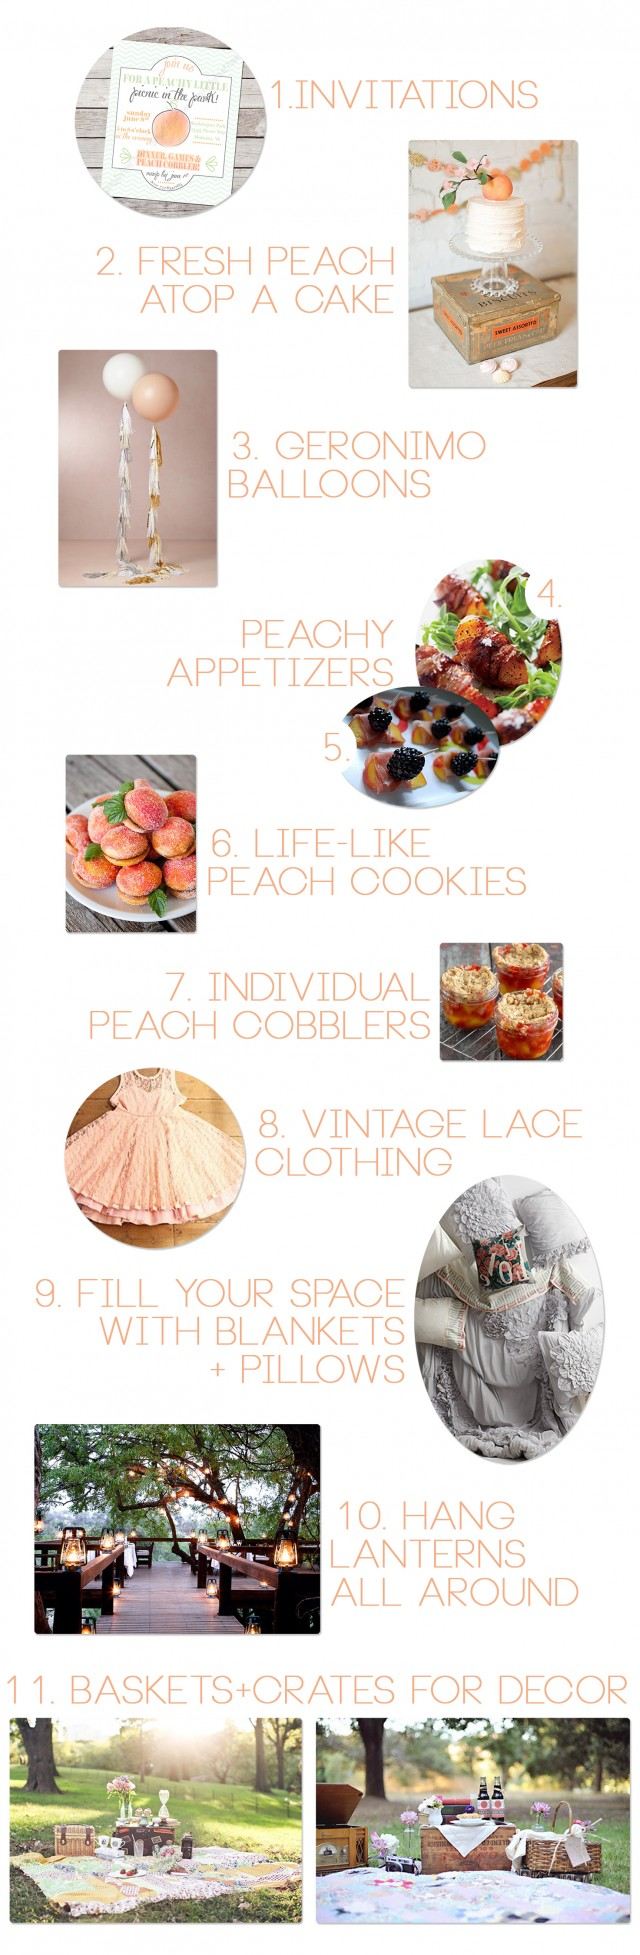 peachparty